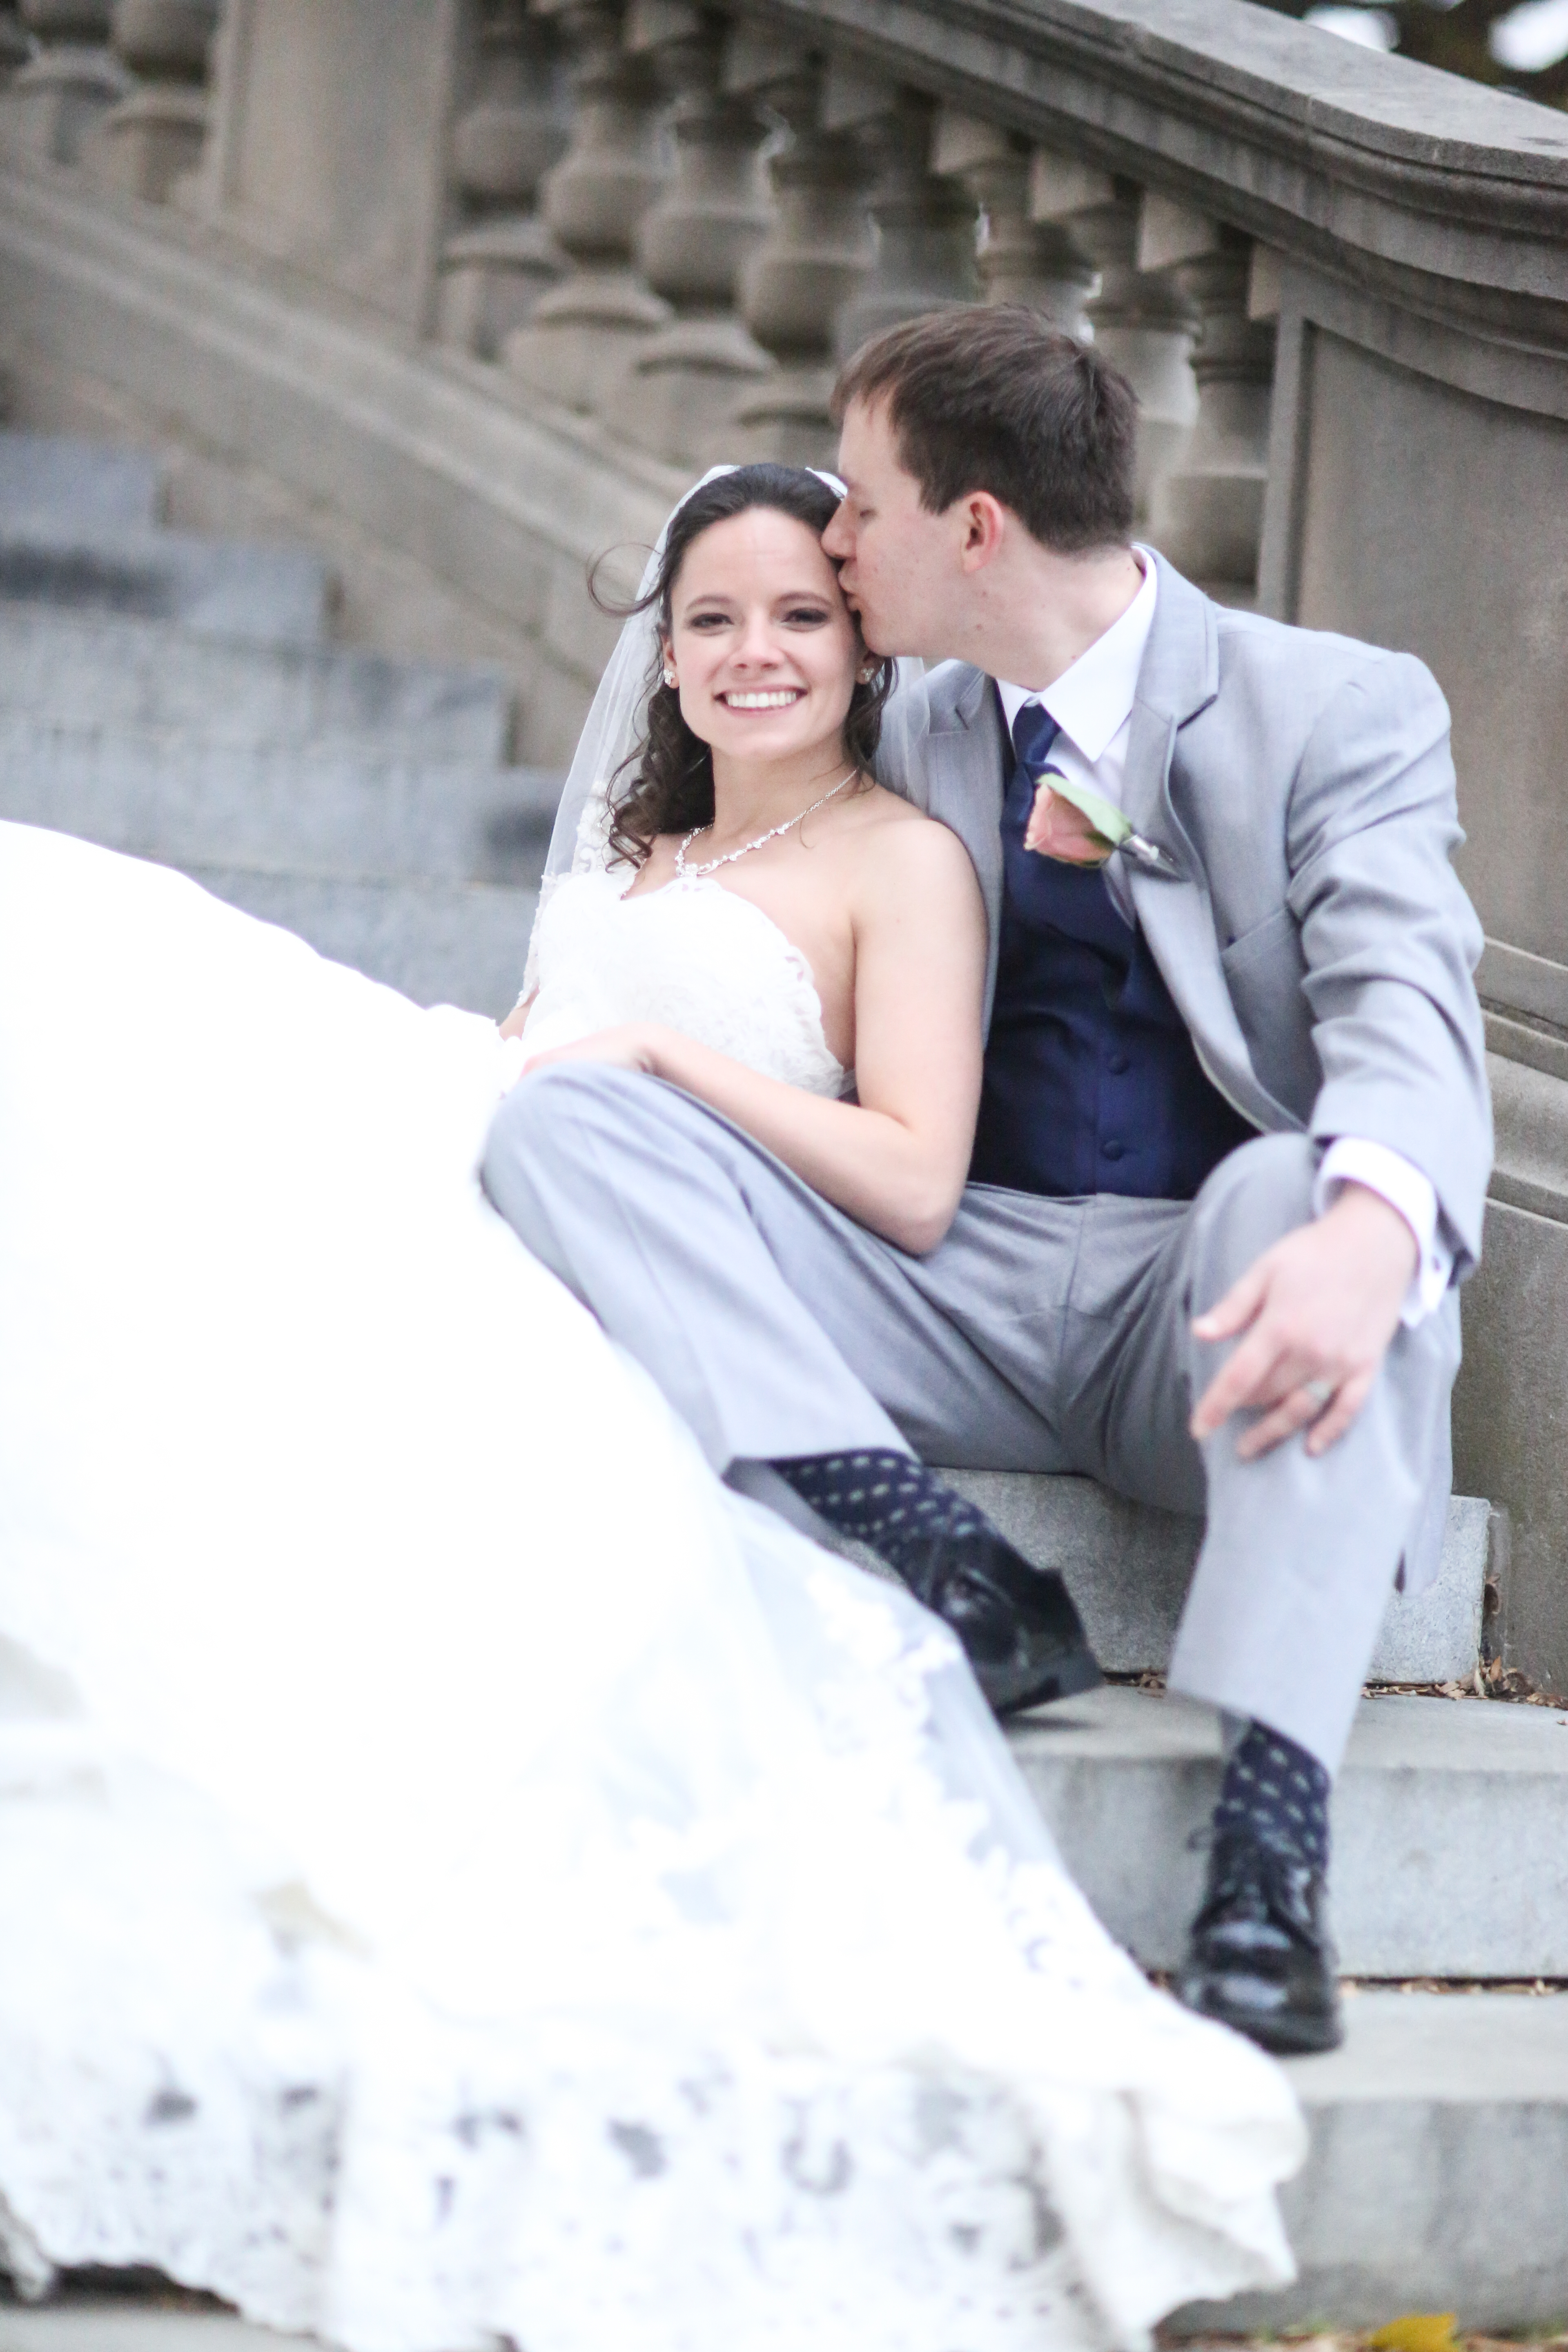 carillon-wedding-richmond-virginia-wedding-heather-michelle-photography-1-of-1-56